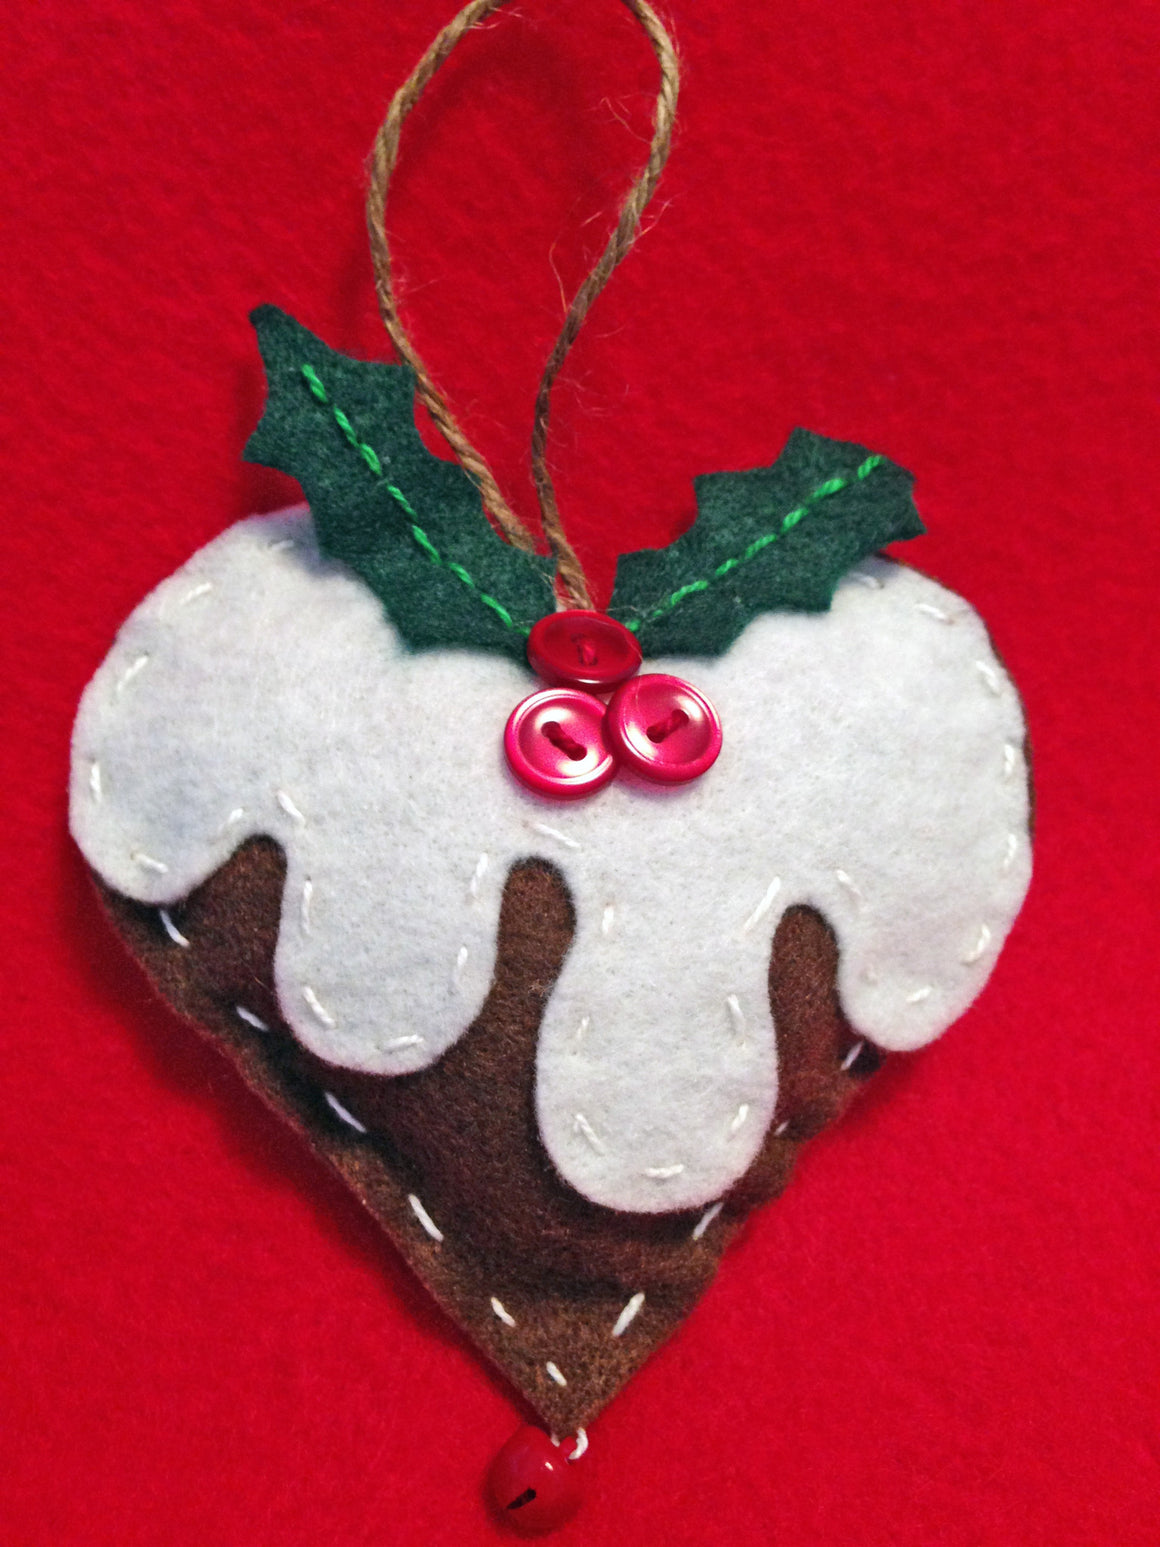 Chocolate Heart Handmade Ornament